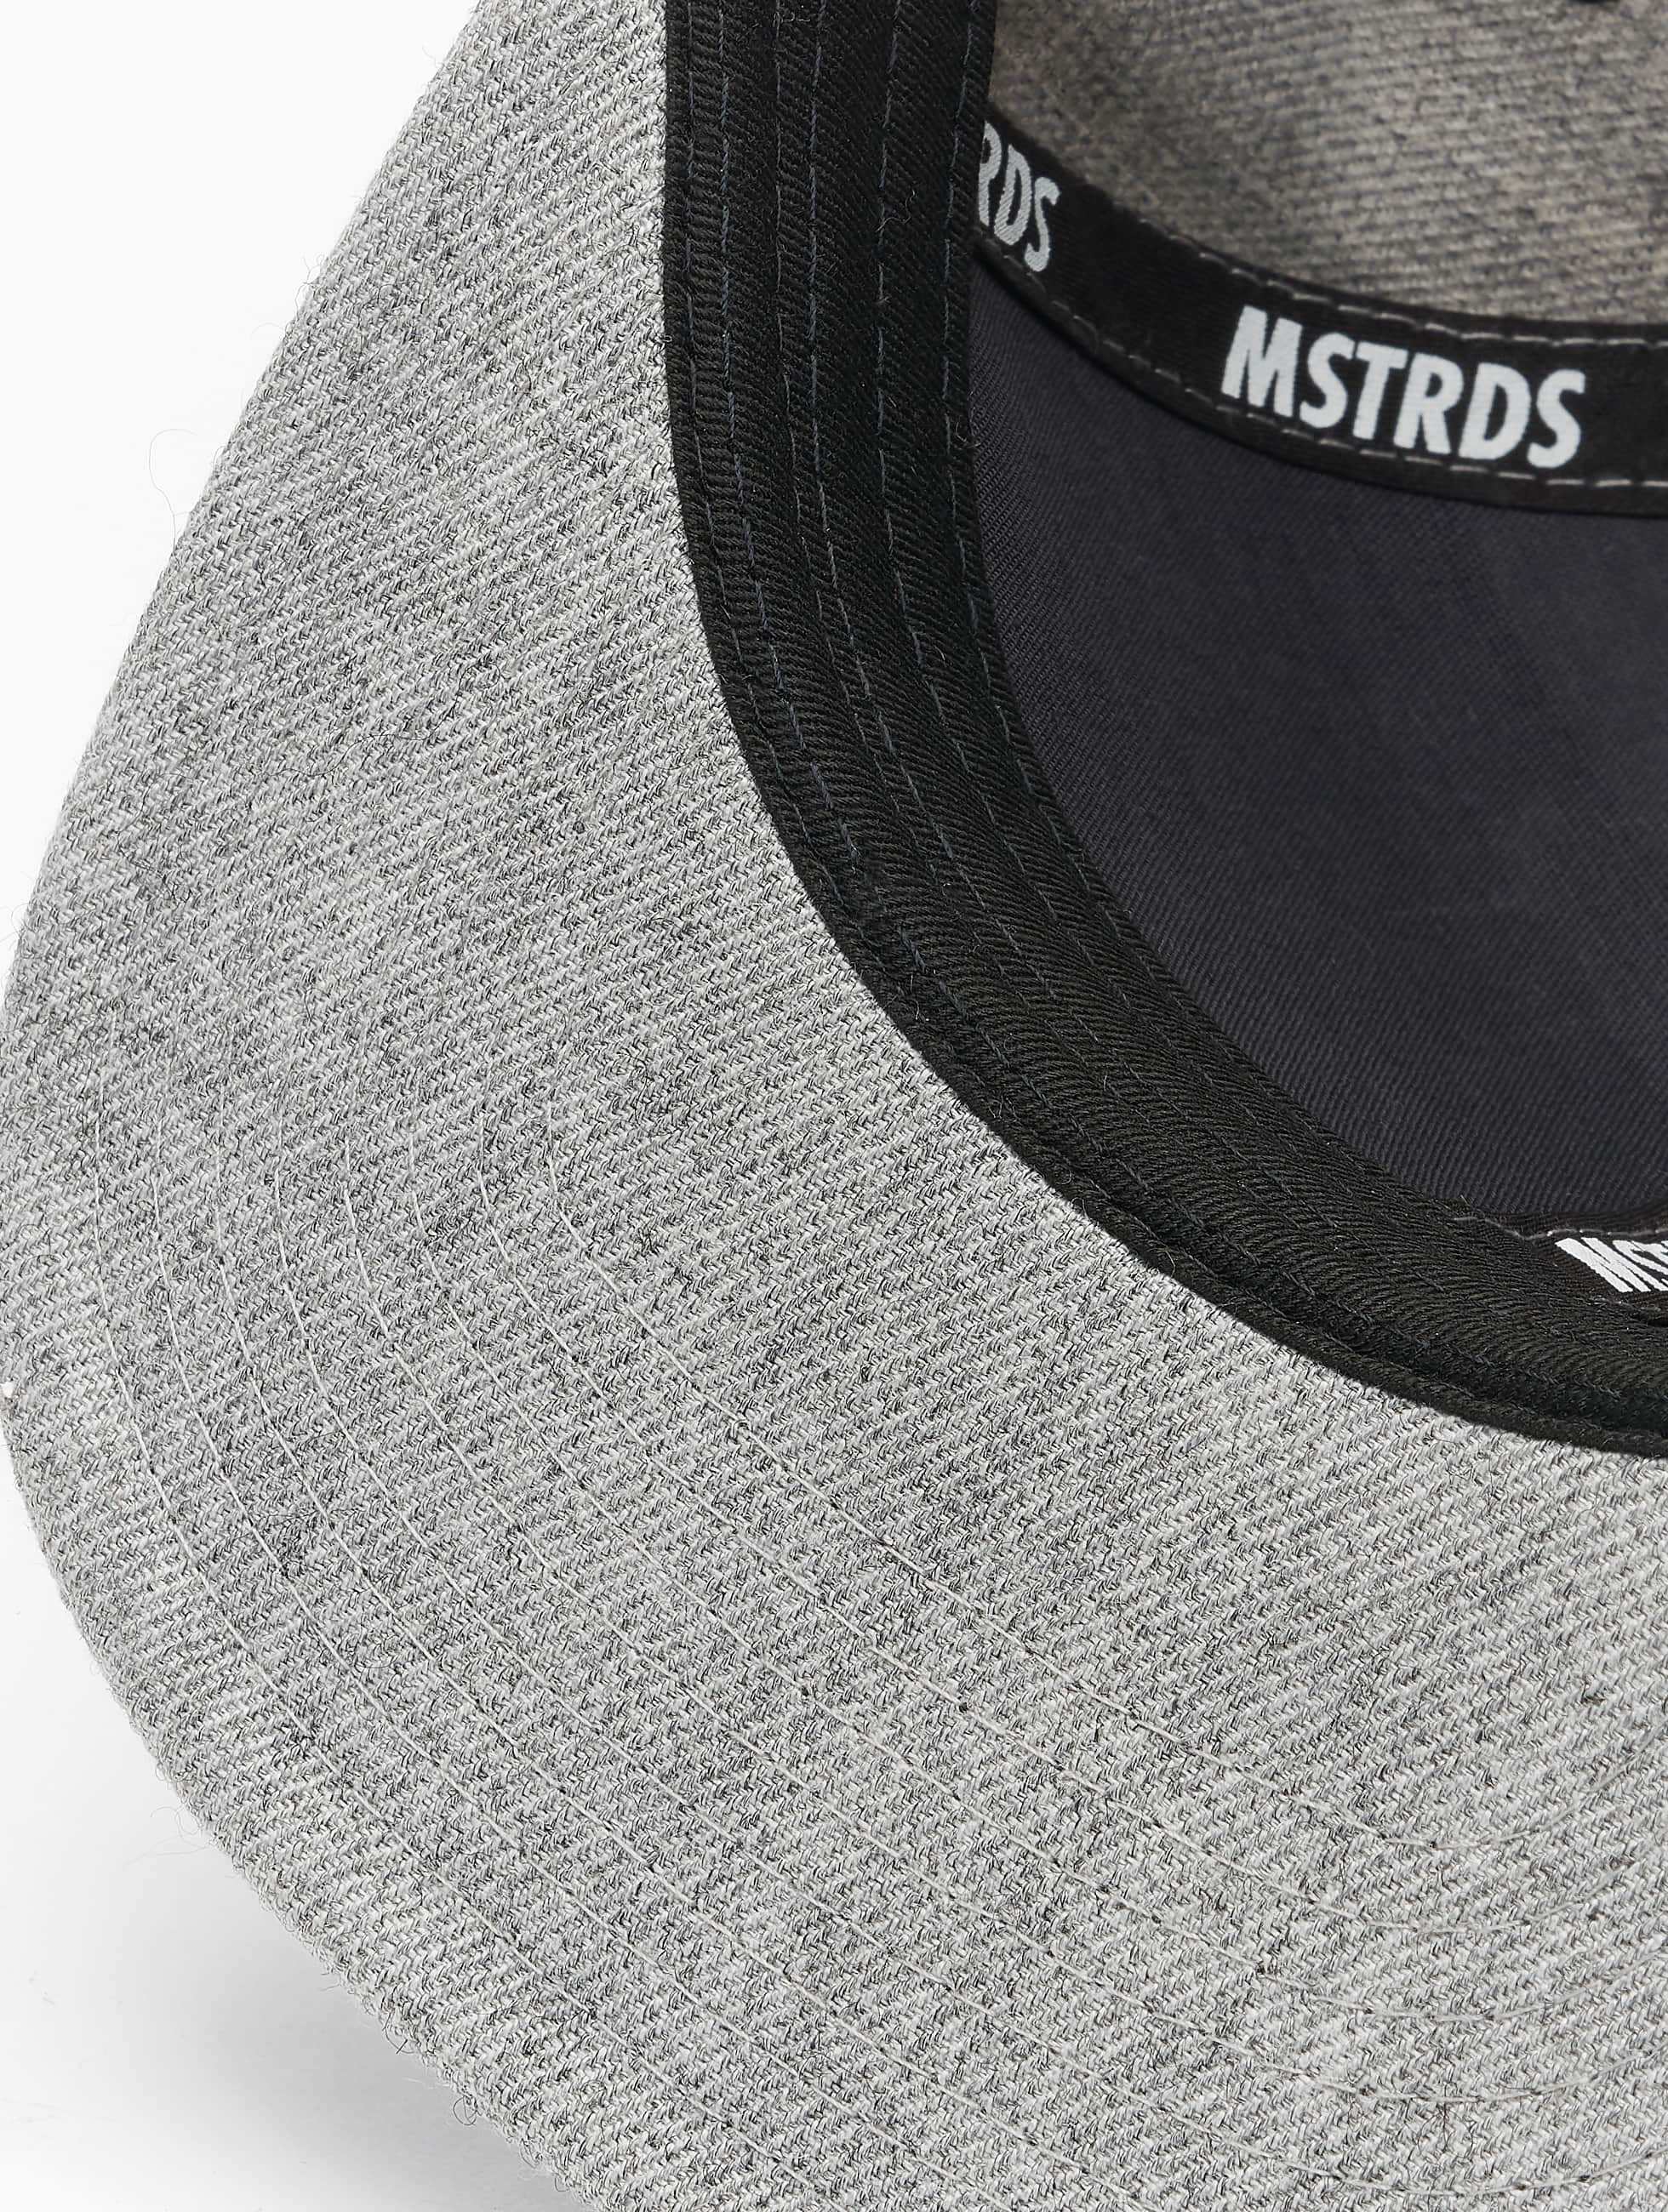 MSTRDS Snapback Caps T Letter szary